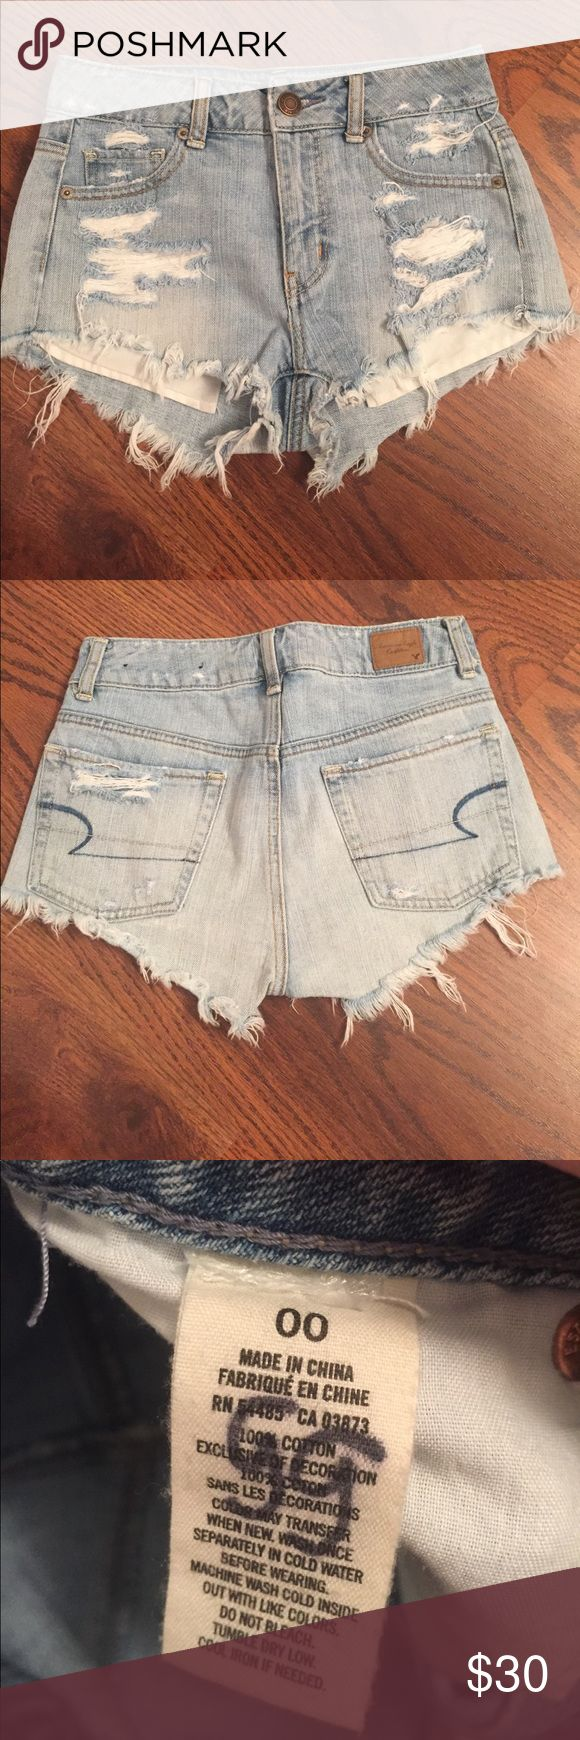 American Eagle High Wasted Ripped Denim Shorts American Eagle high wasted ripped denim shorts. Inner label has my initials written in them but overall great condition. From a smoke free home.  Feel free to comment with any questions or to make me an offer! American Eagle Outfitters Shorts Jean Shorts